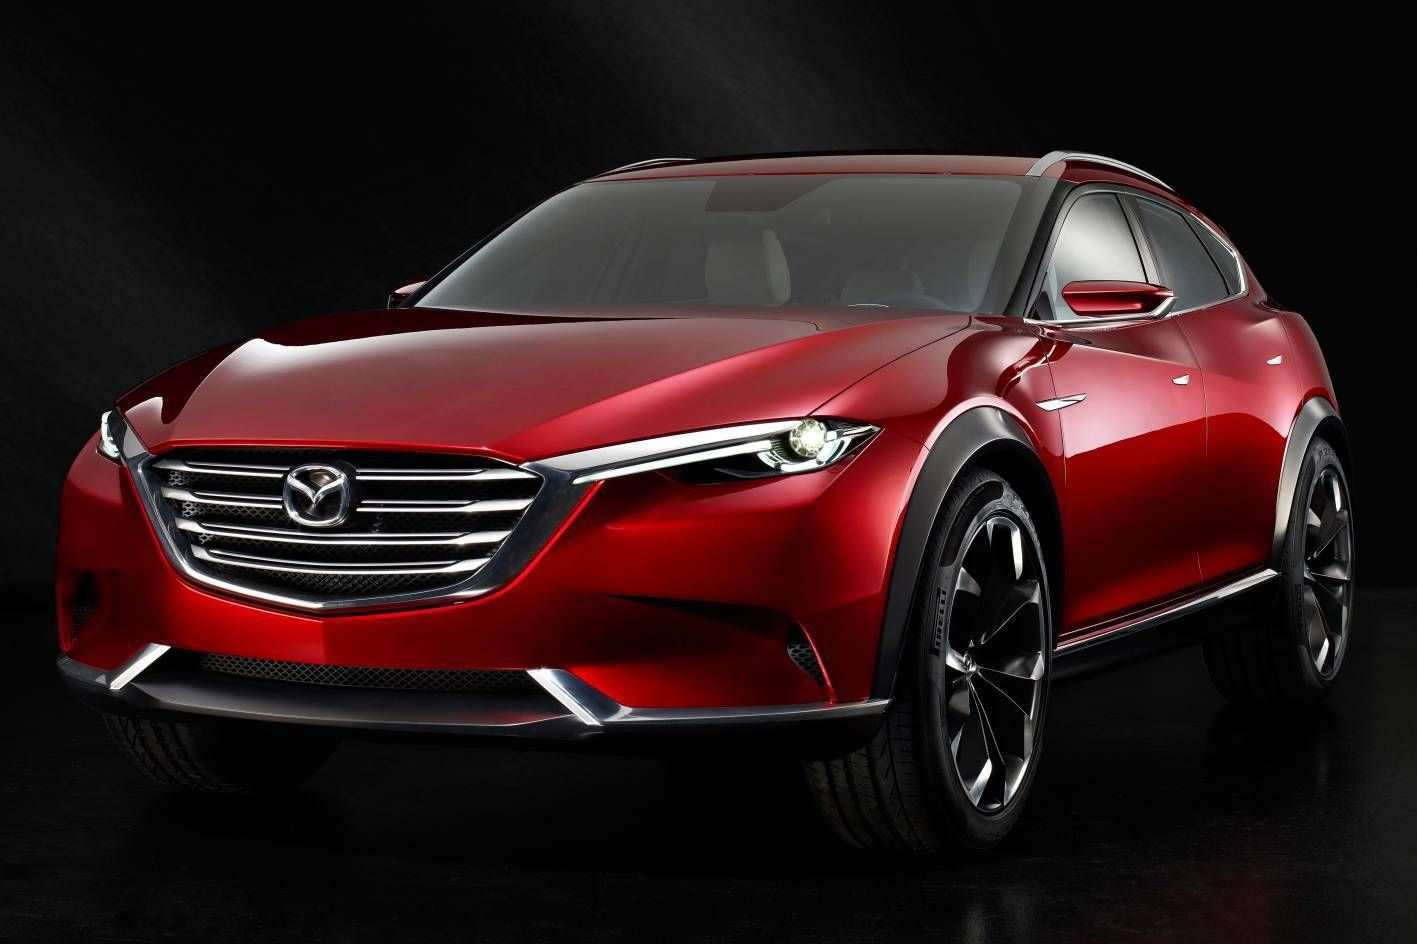 97 The Best 2020 Mazda Cx 9 Rumors Review